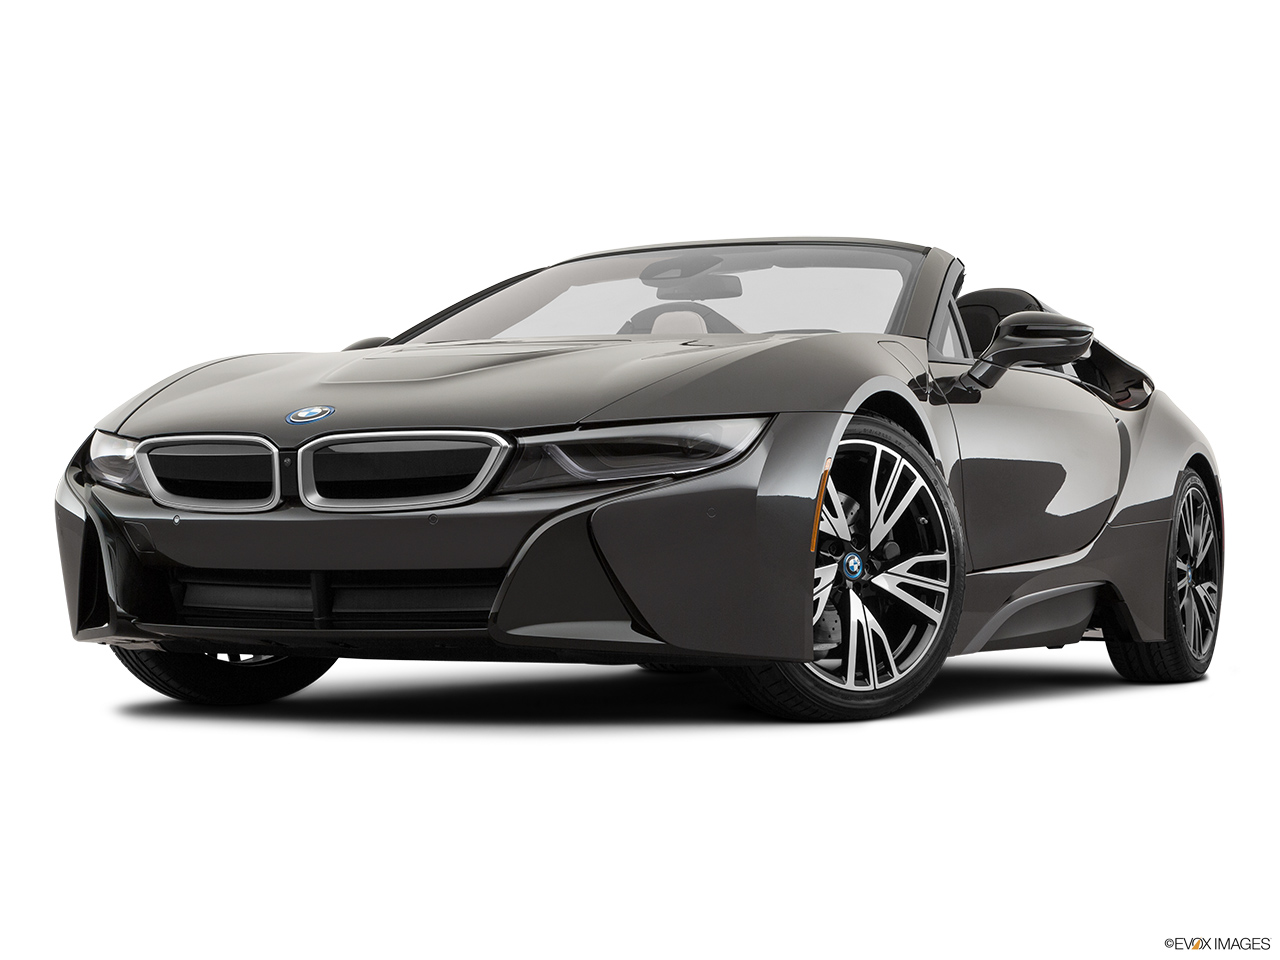 2019 BMW i8 Roadster Standard World Front angle view, low wide perspective.